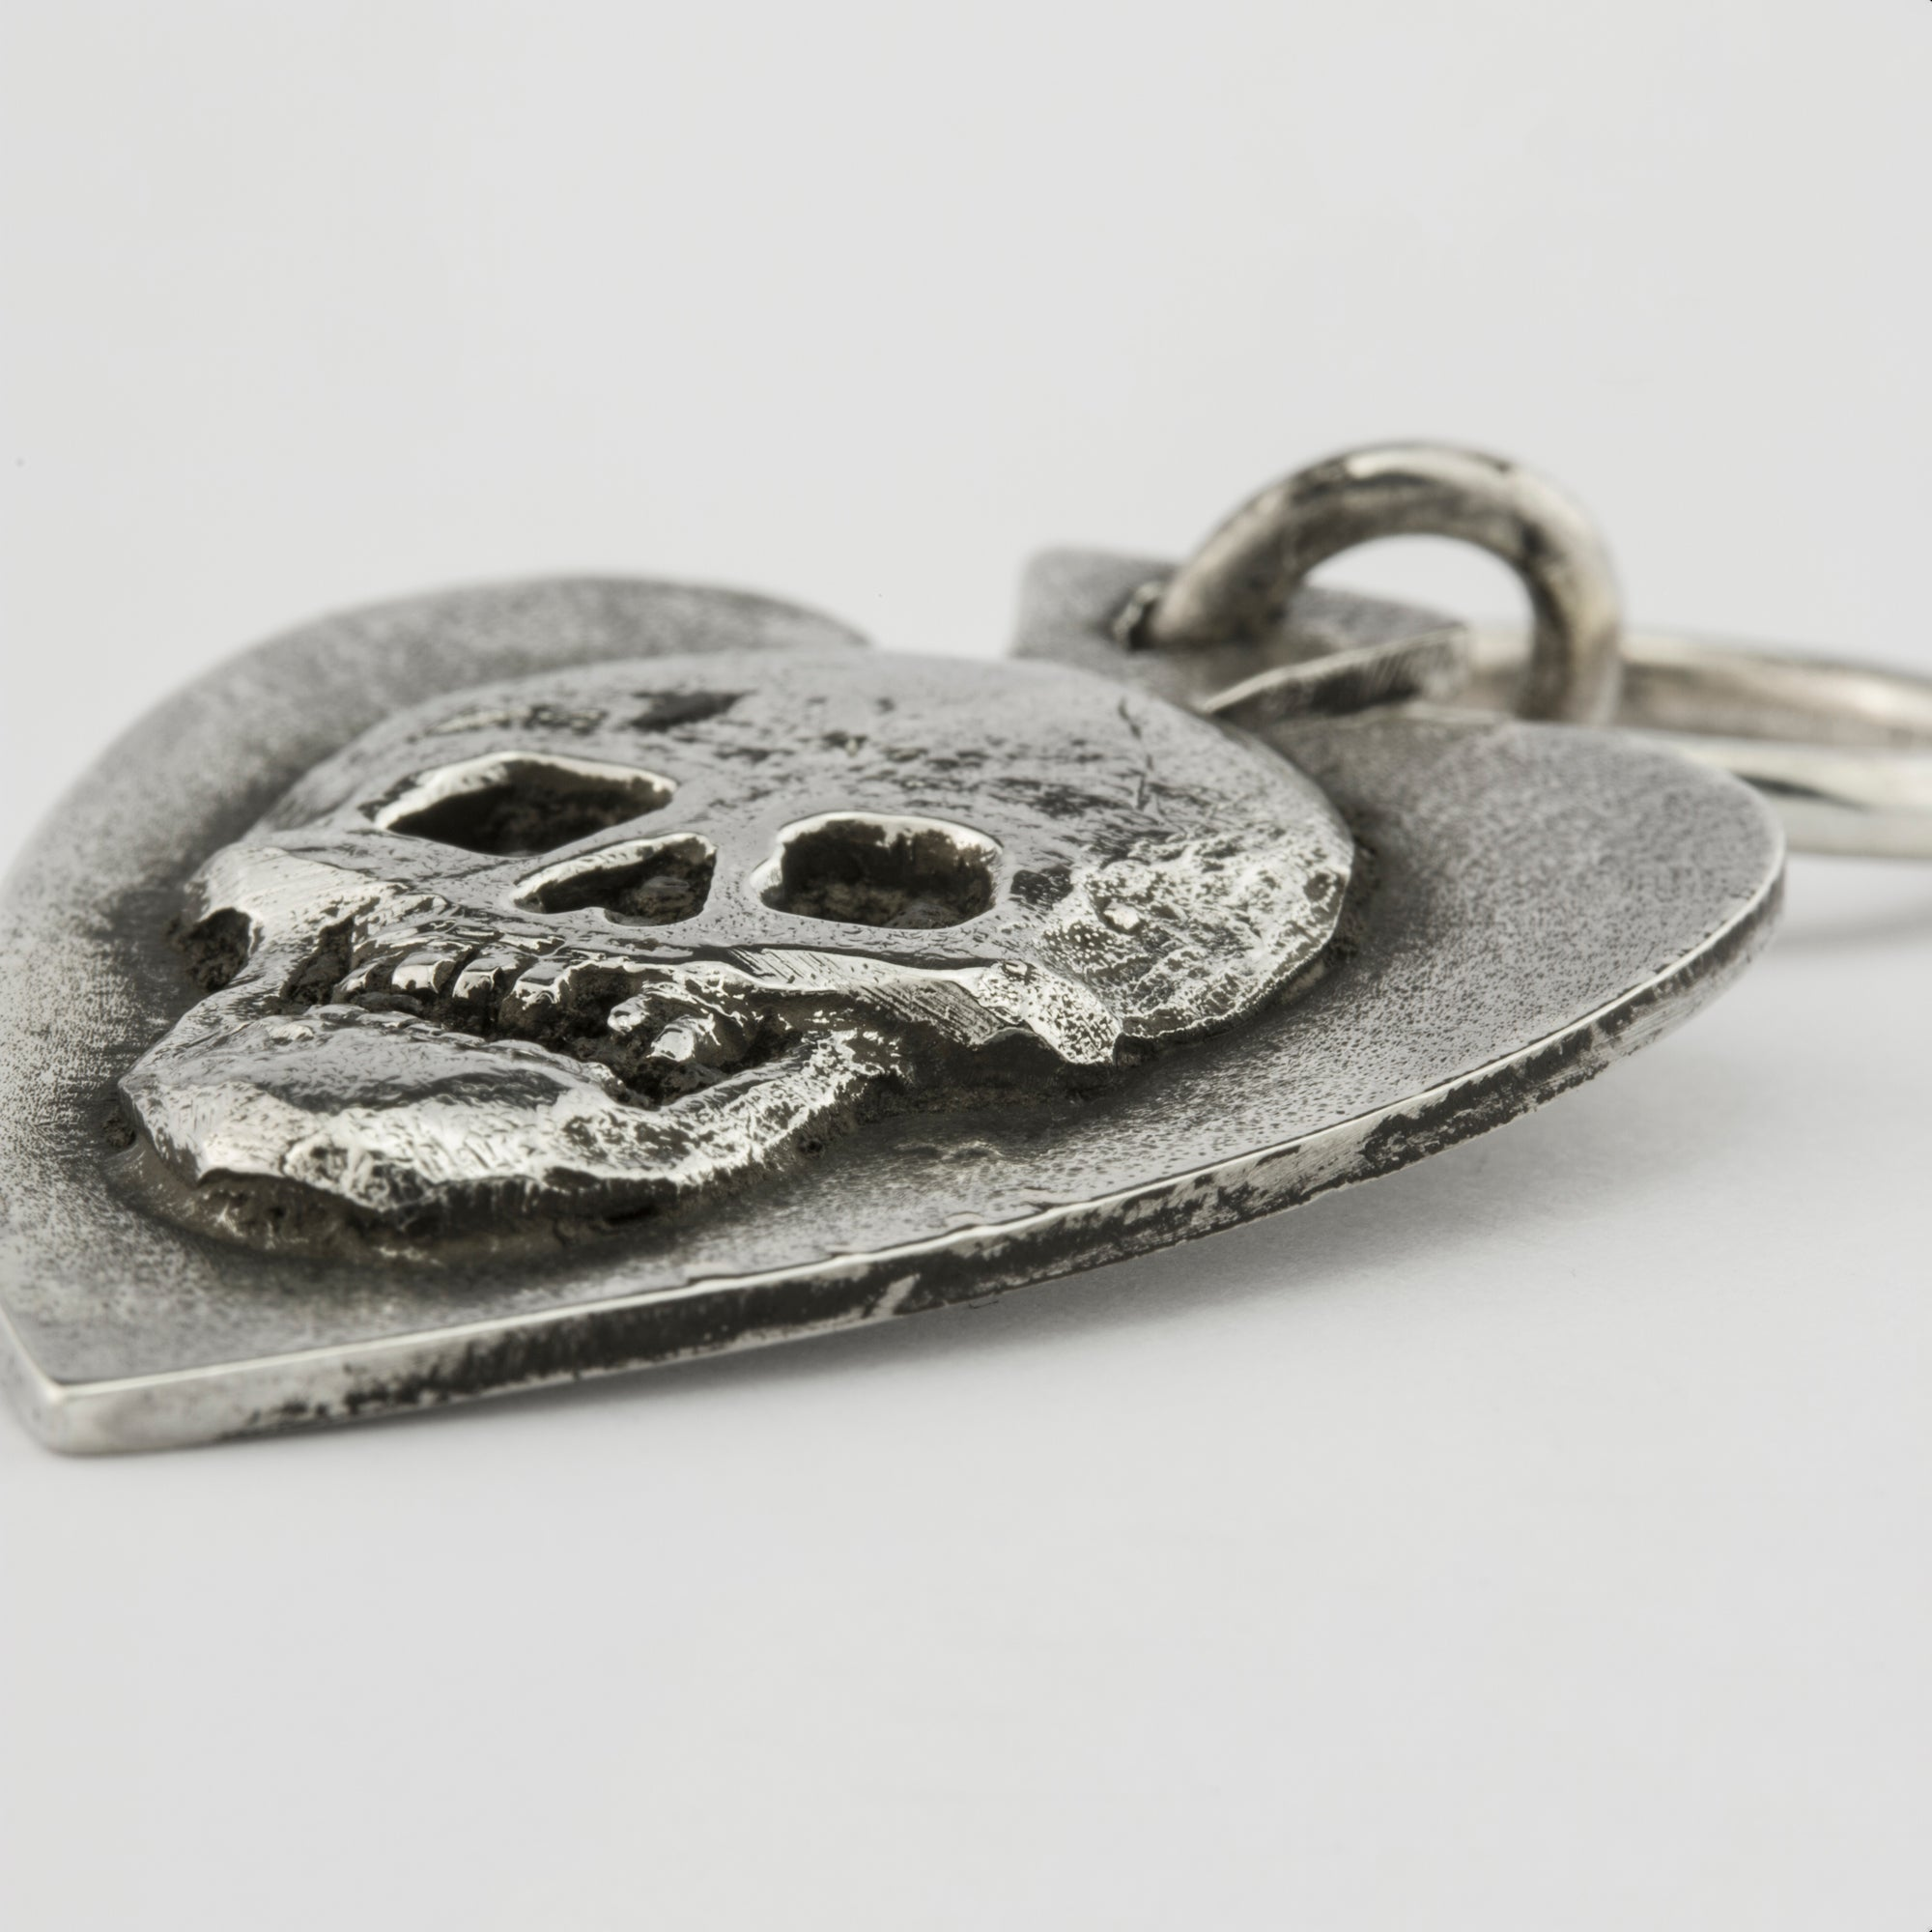 Henson x Thanks Tattoo - Skull Key Ring